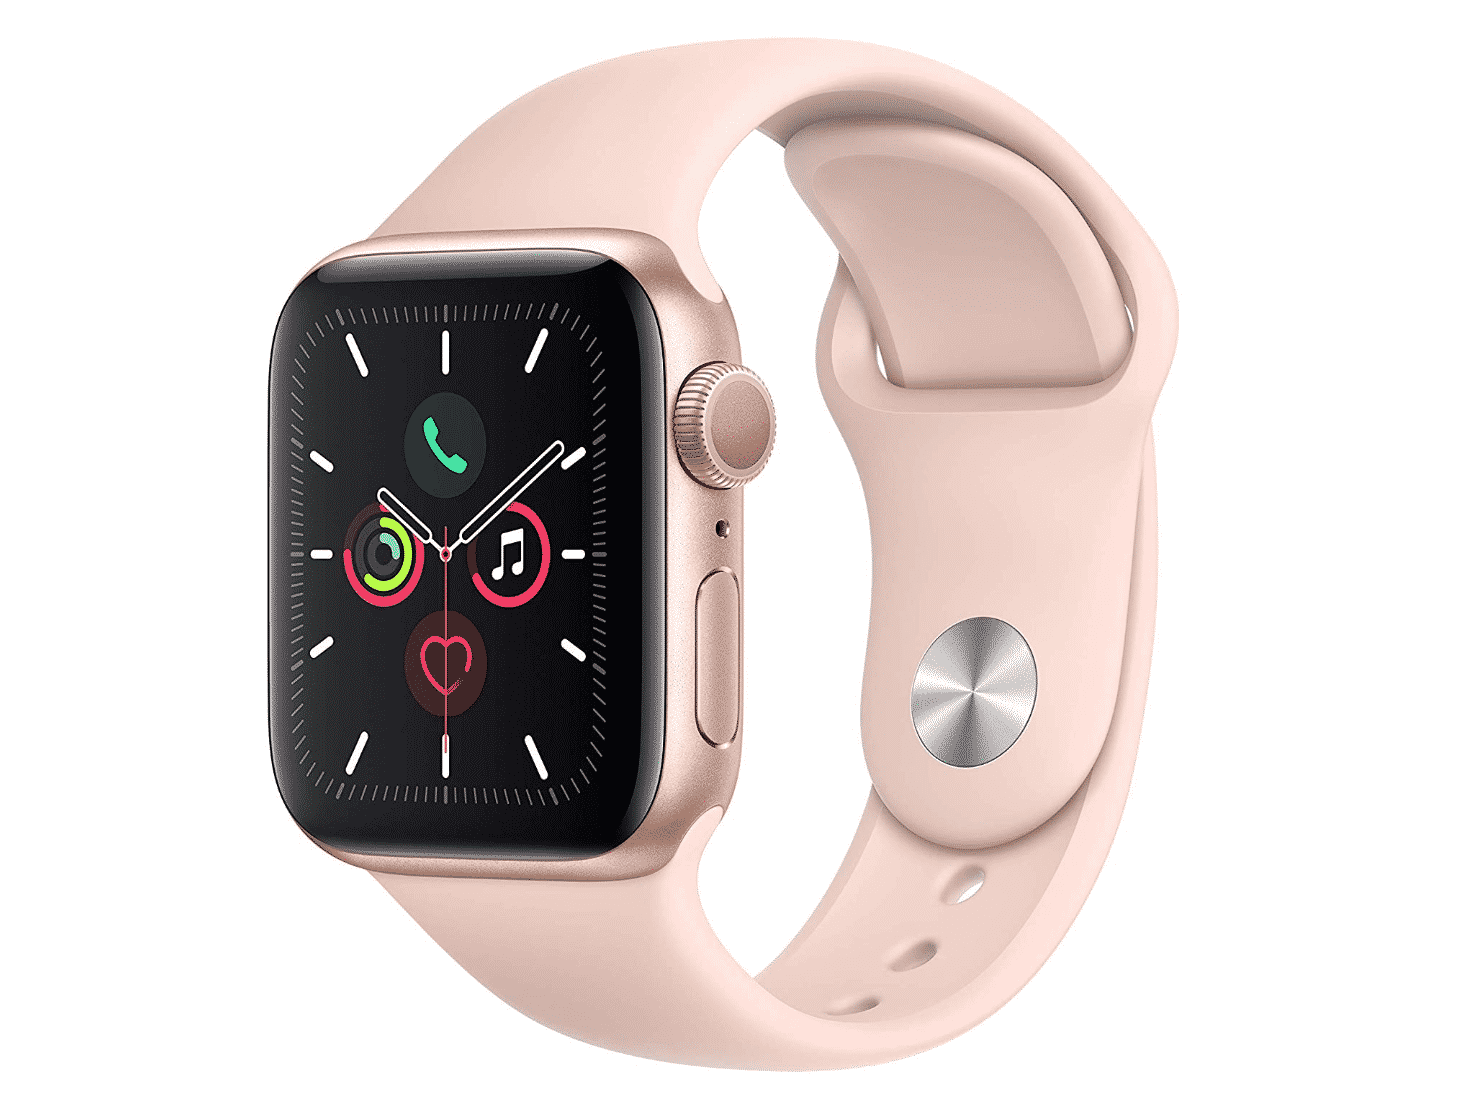 Newest Apple Watch Series 5 Priced at Just $355